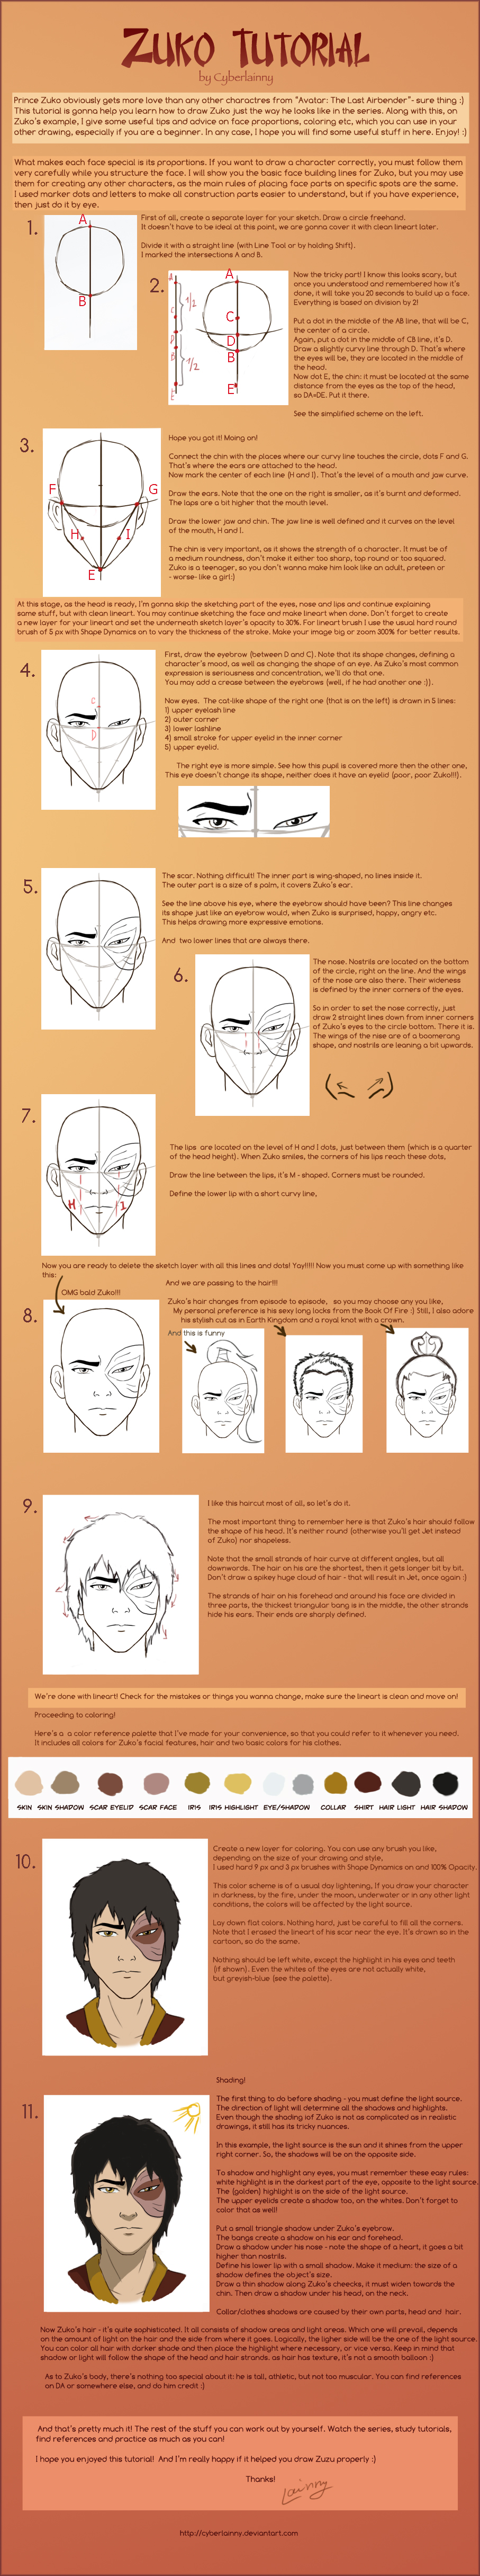 How to draw zuko tutorial by lulu lomaki